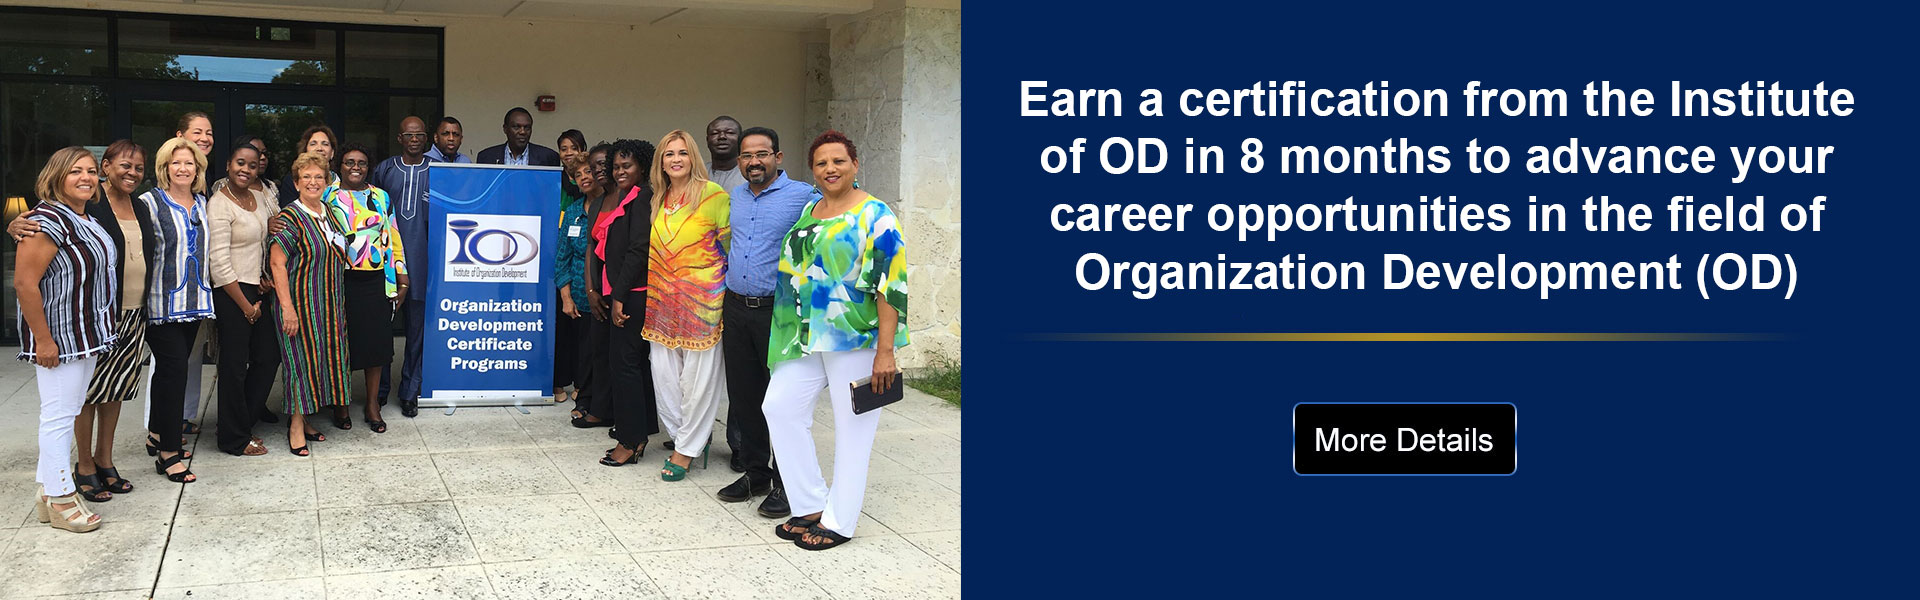 Earn a certification from the Institute of OD in 8 months